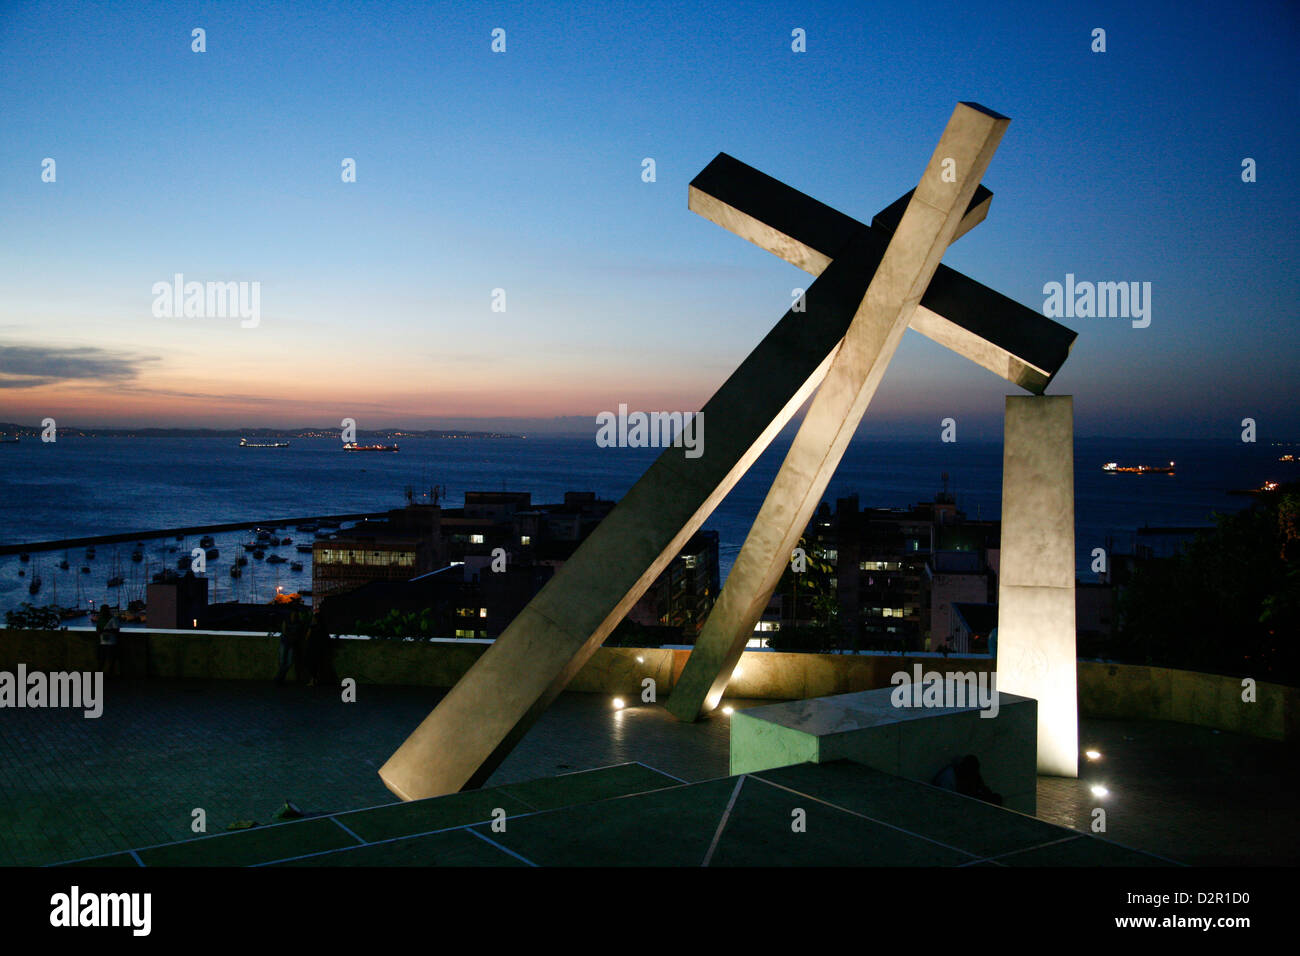 Largo da Cruz Quebrada (Fallen Cross), Pelourinho, Salvador (Salvador de Bahia), Bahia, Brazil, South America - Stock Image